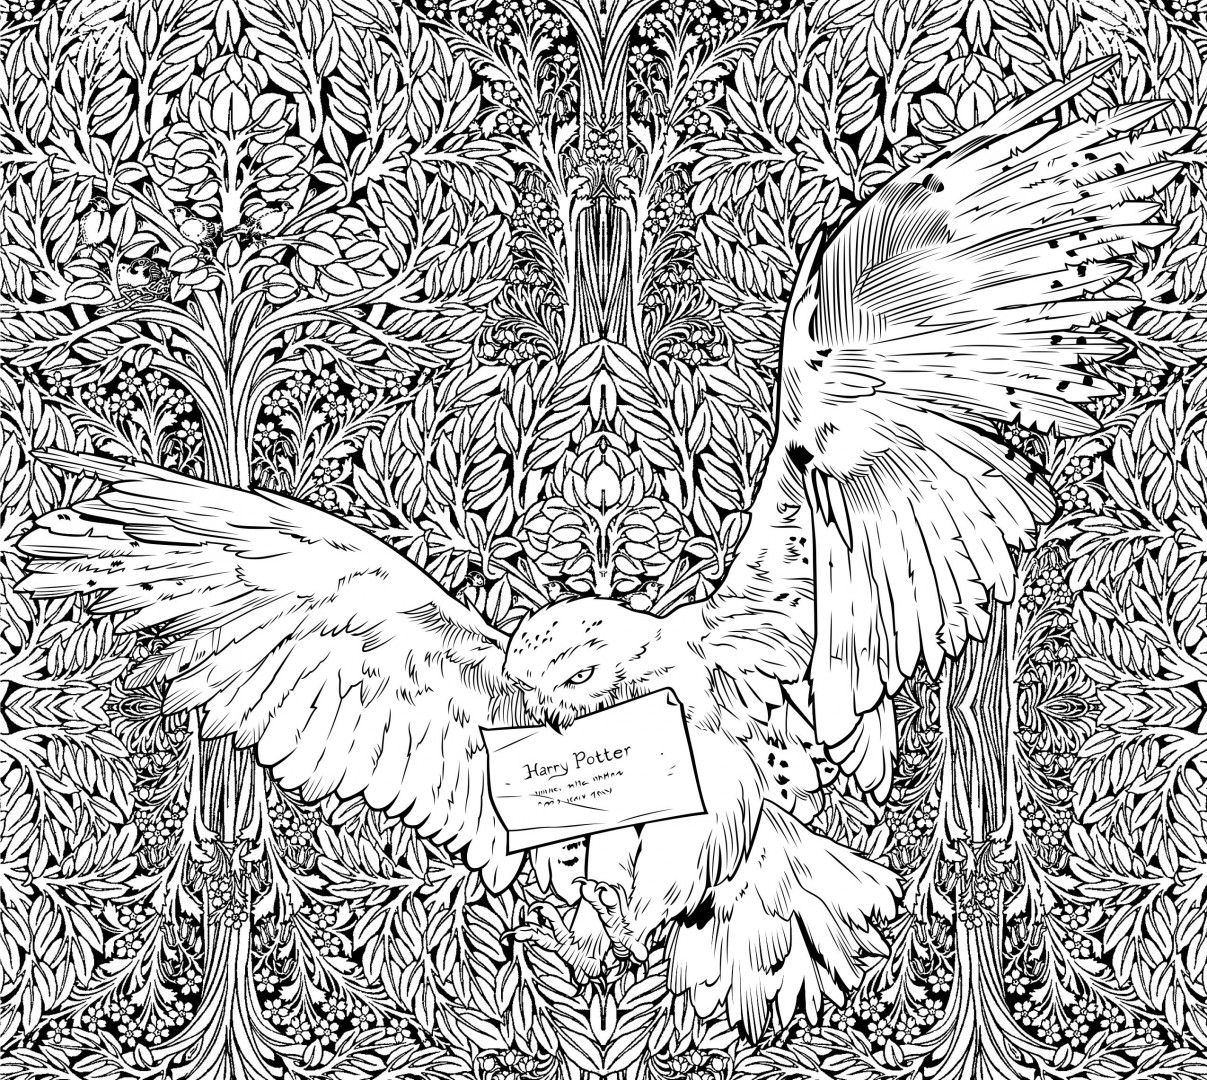 Harry Potter Adult Coloring Pages Com Imagens Adult Coloring